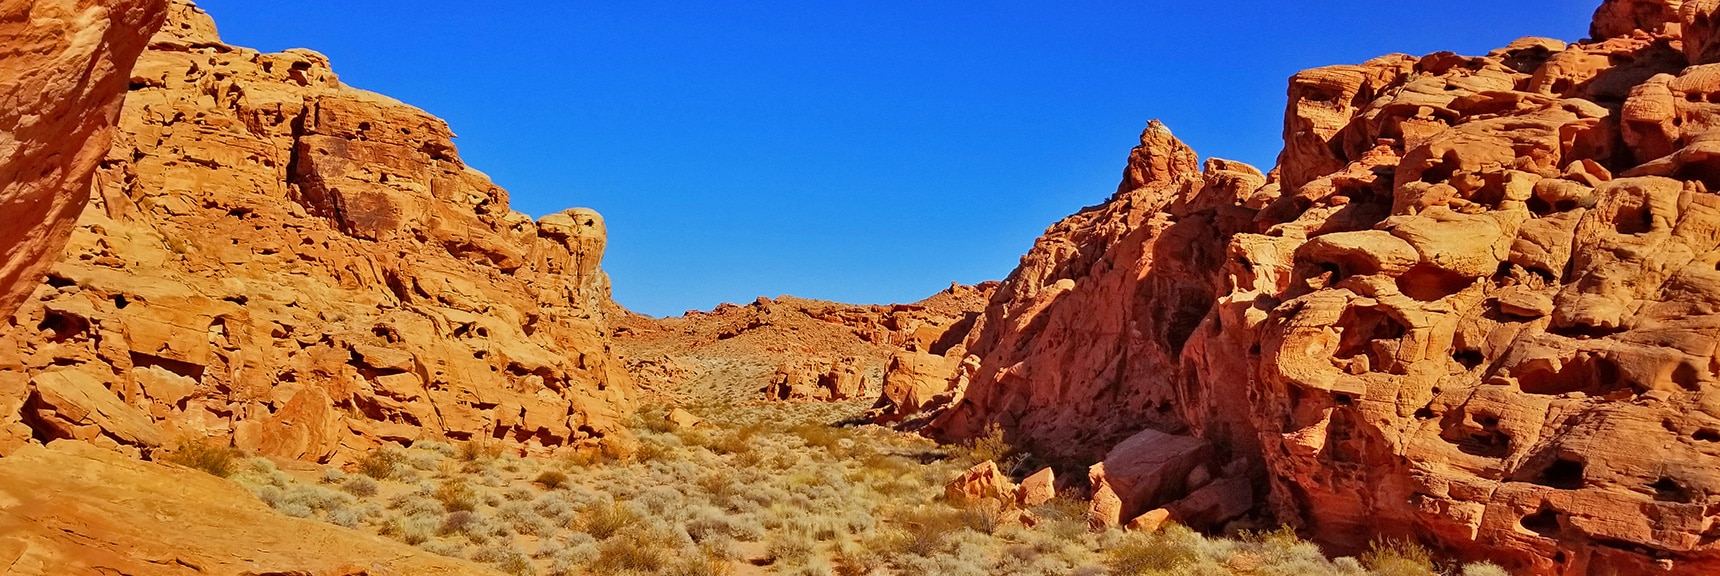 Imagine Pteranodons Soaring the Skies | Bowl of Fire, Lake Mead National Recreation Area, Nevada